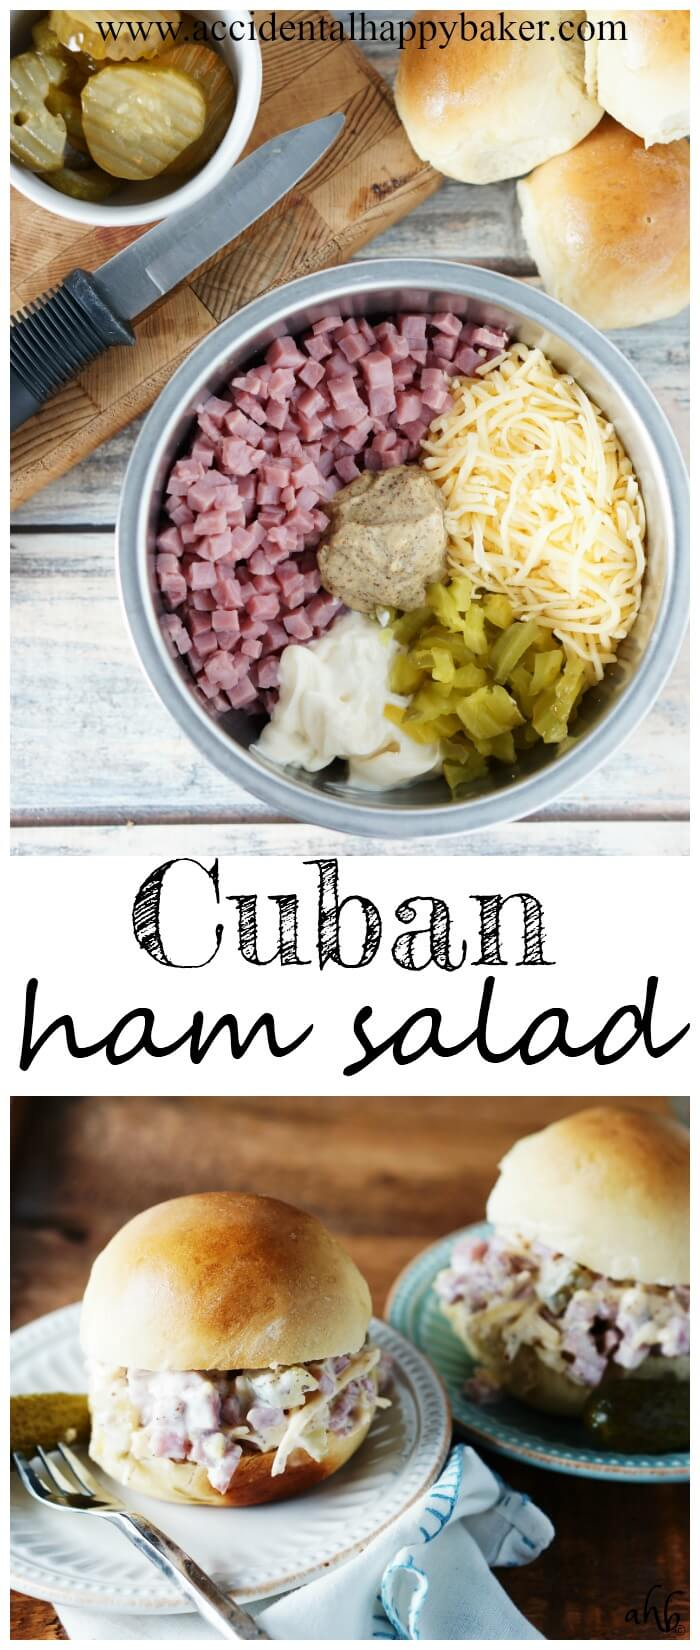 Pep up your sandwiches with this easy Cuban ham salad. This zippy sandwich spread has the flavor of Cuban sandwiches and it perfect for parties and picnics.